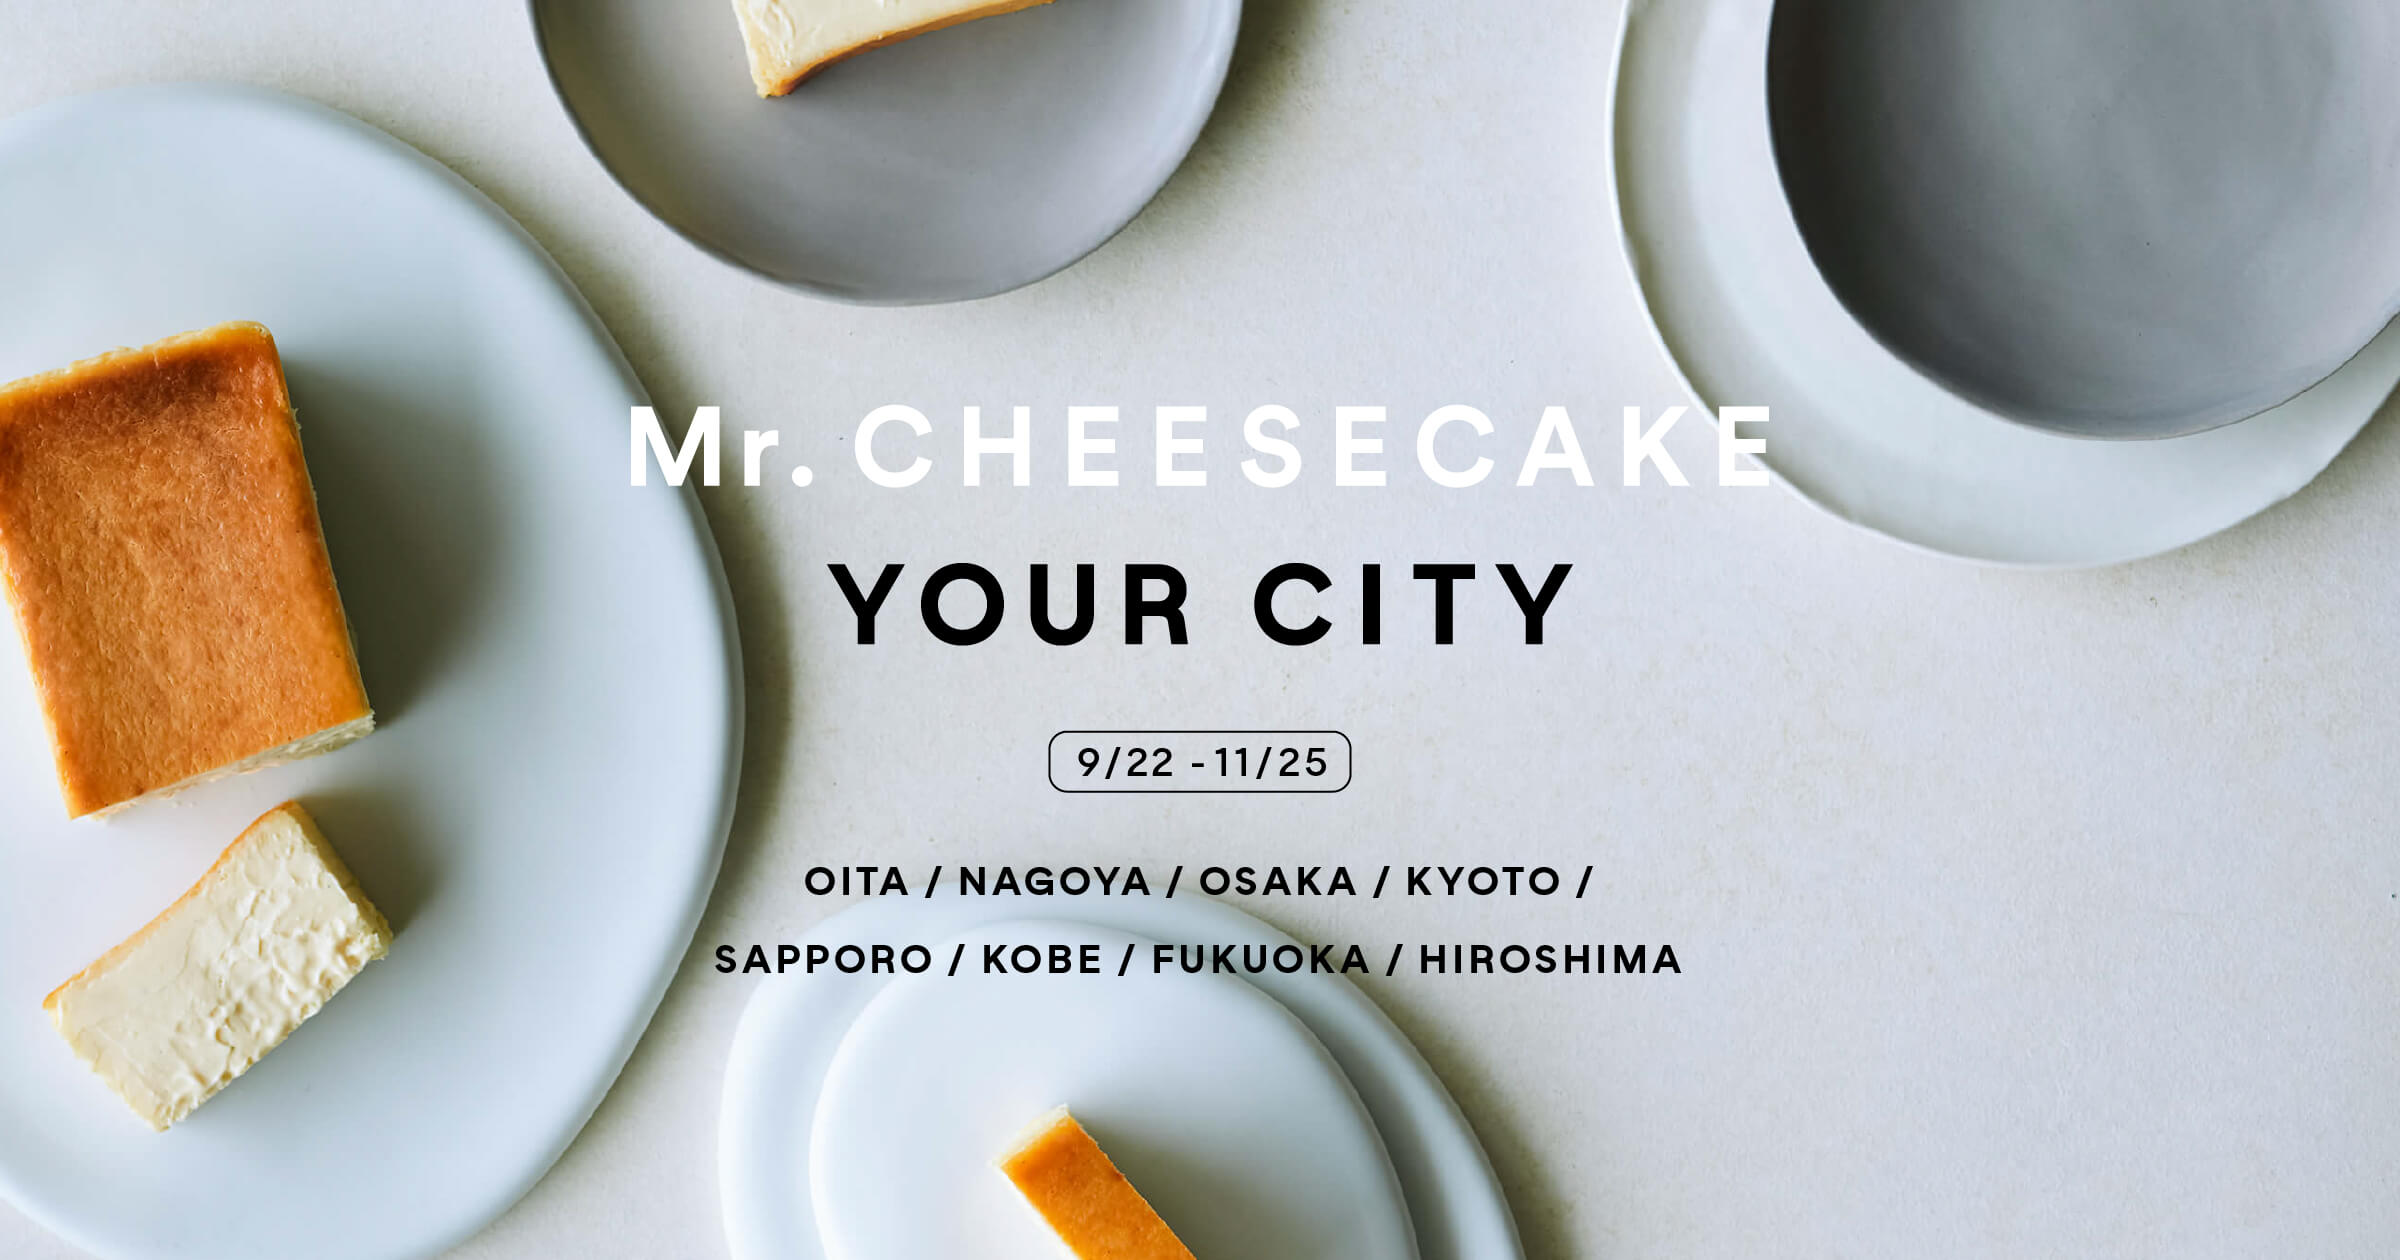 Mr. CHEESECAKE YOUR CITY